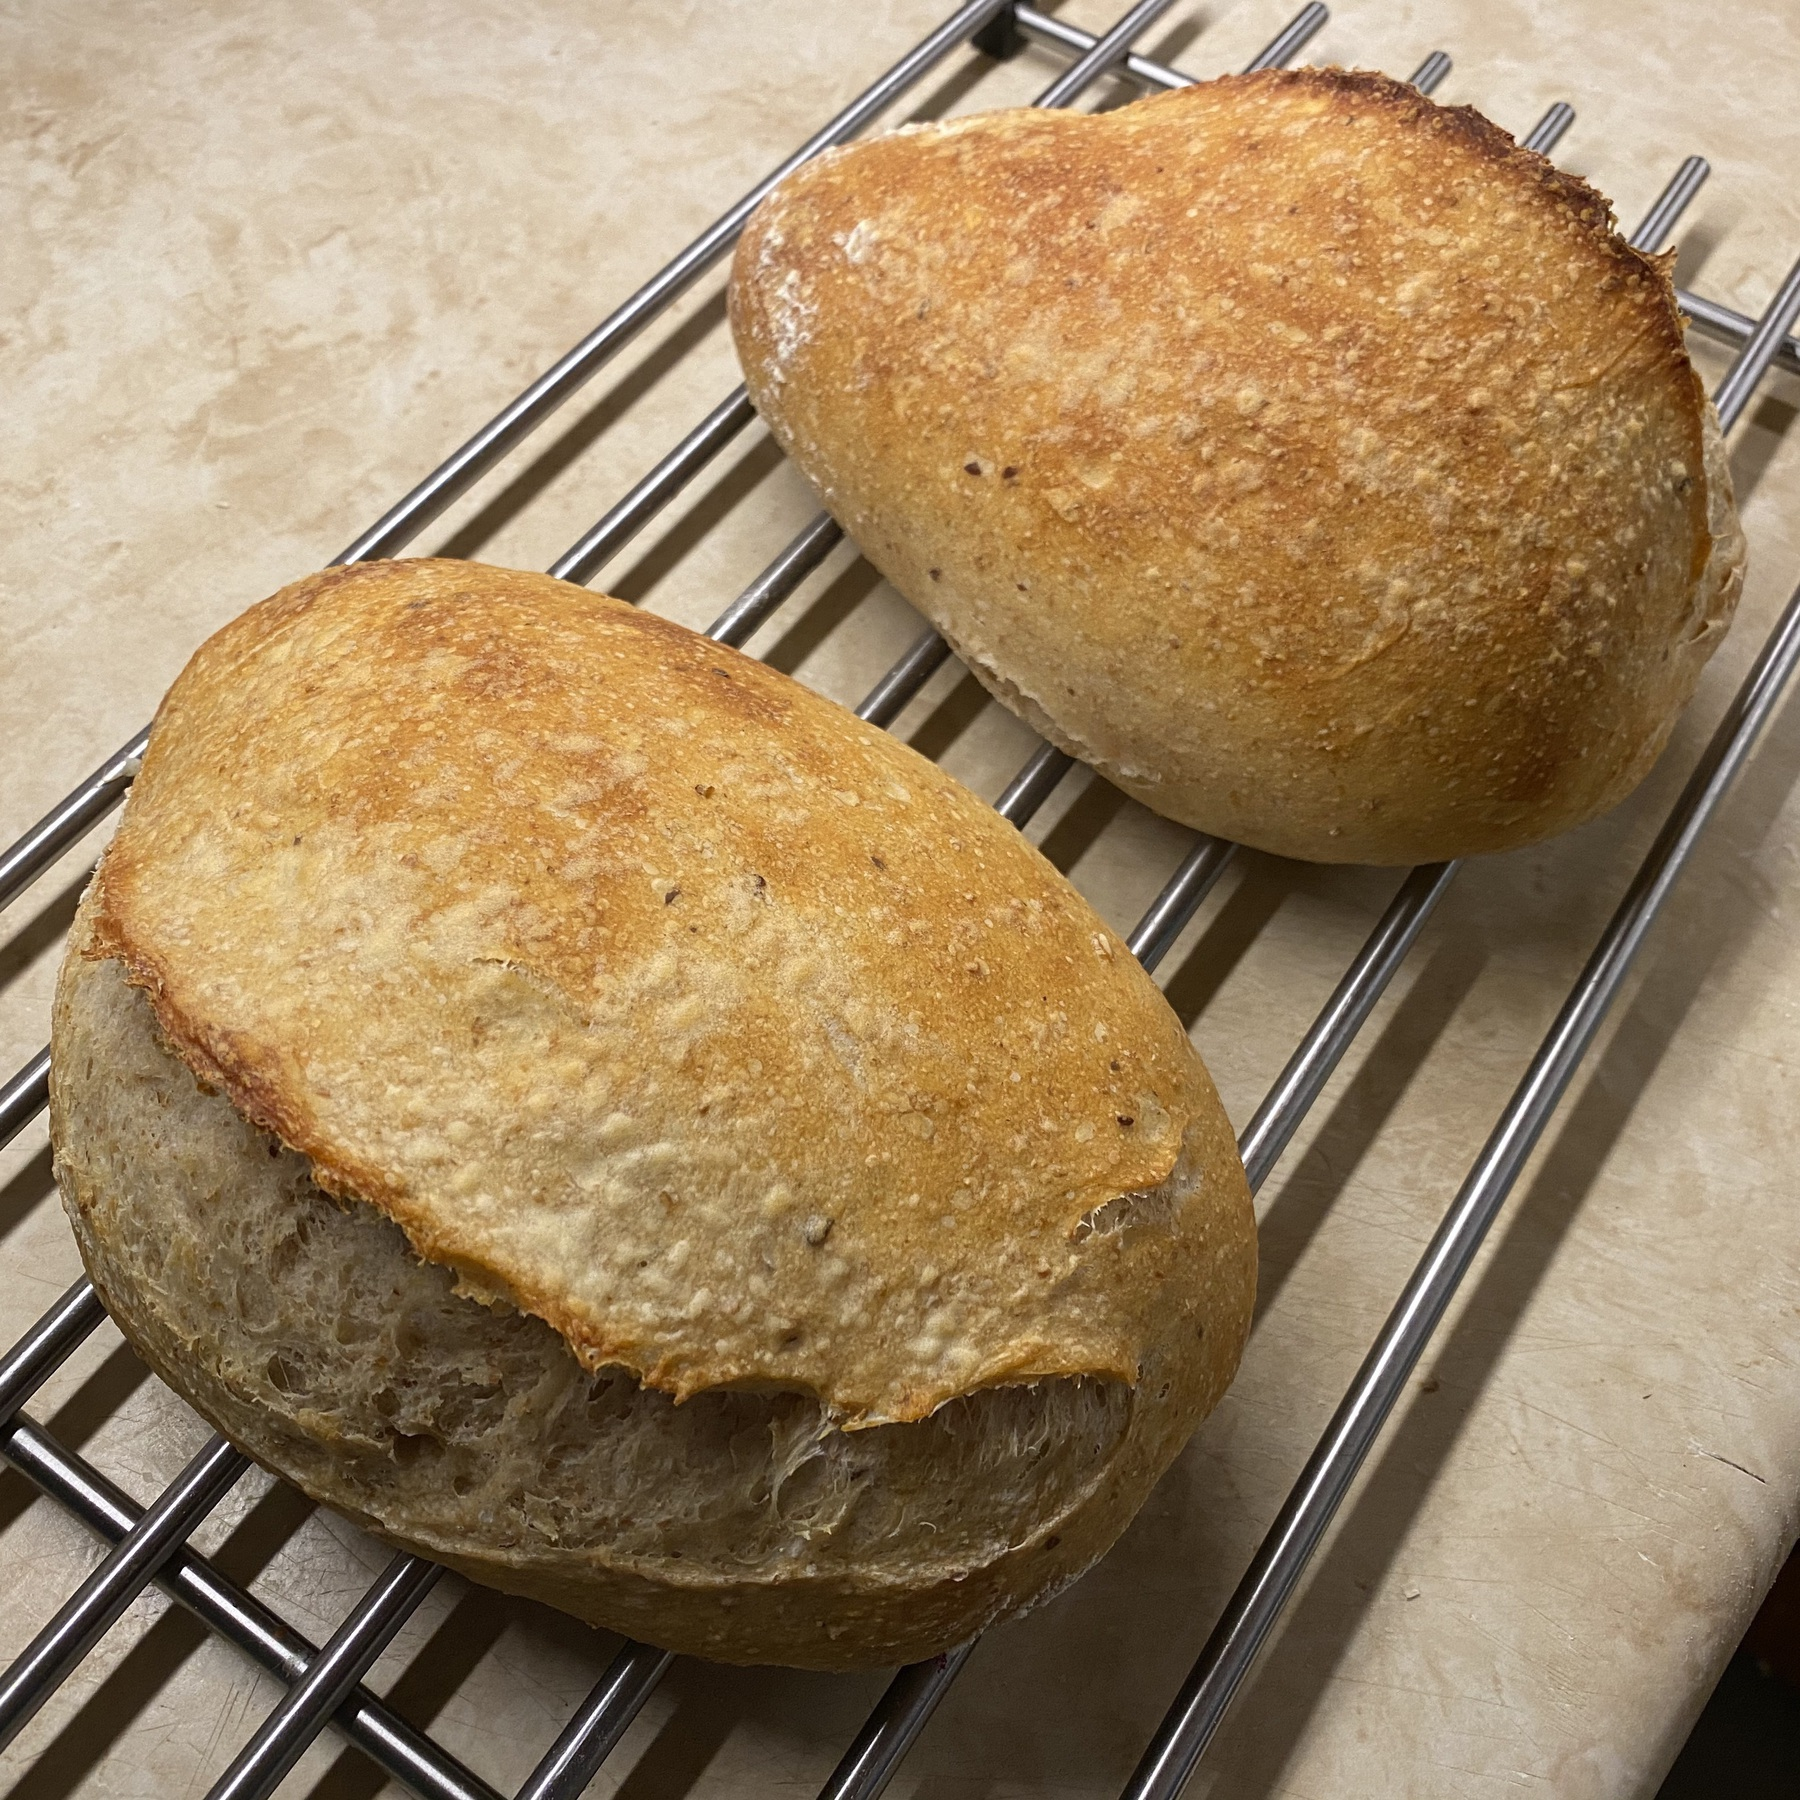 Sourdough loaves cooling on metal rack.